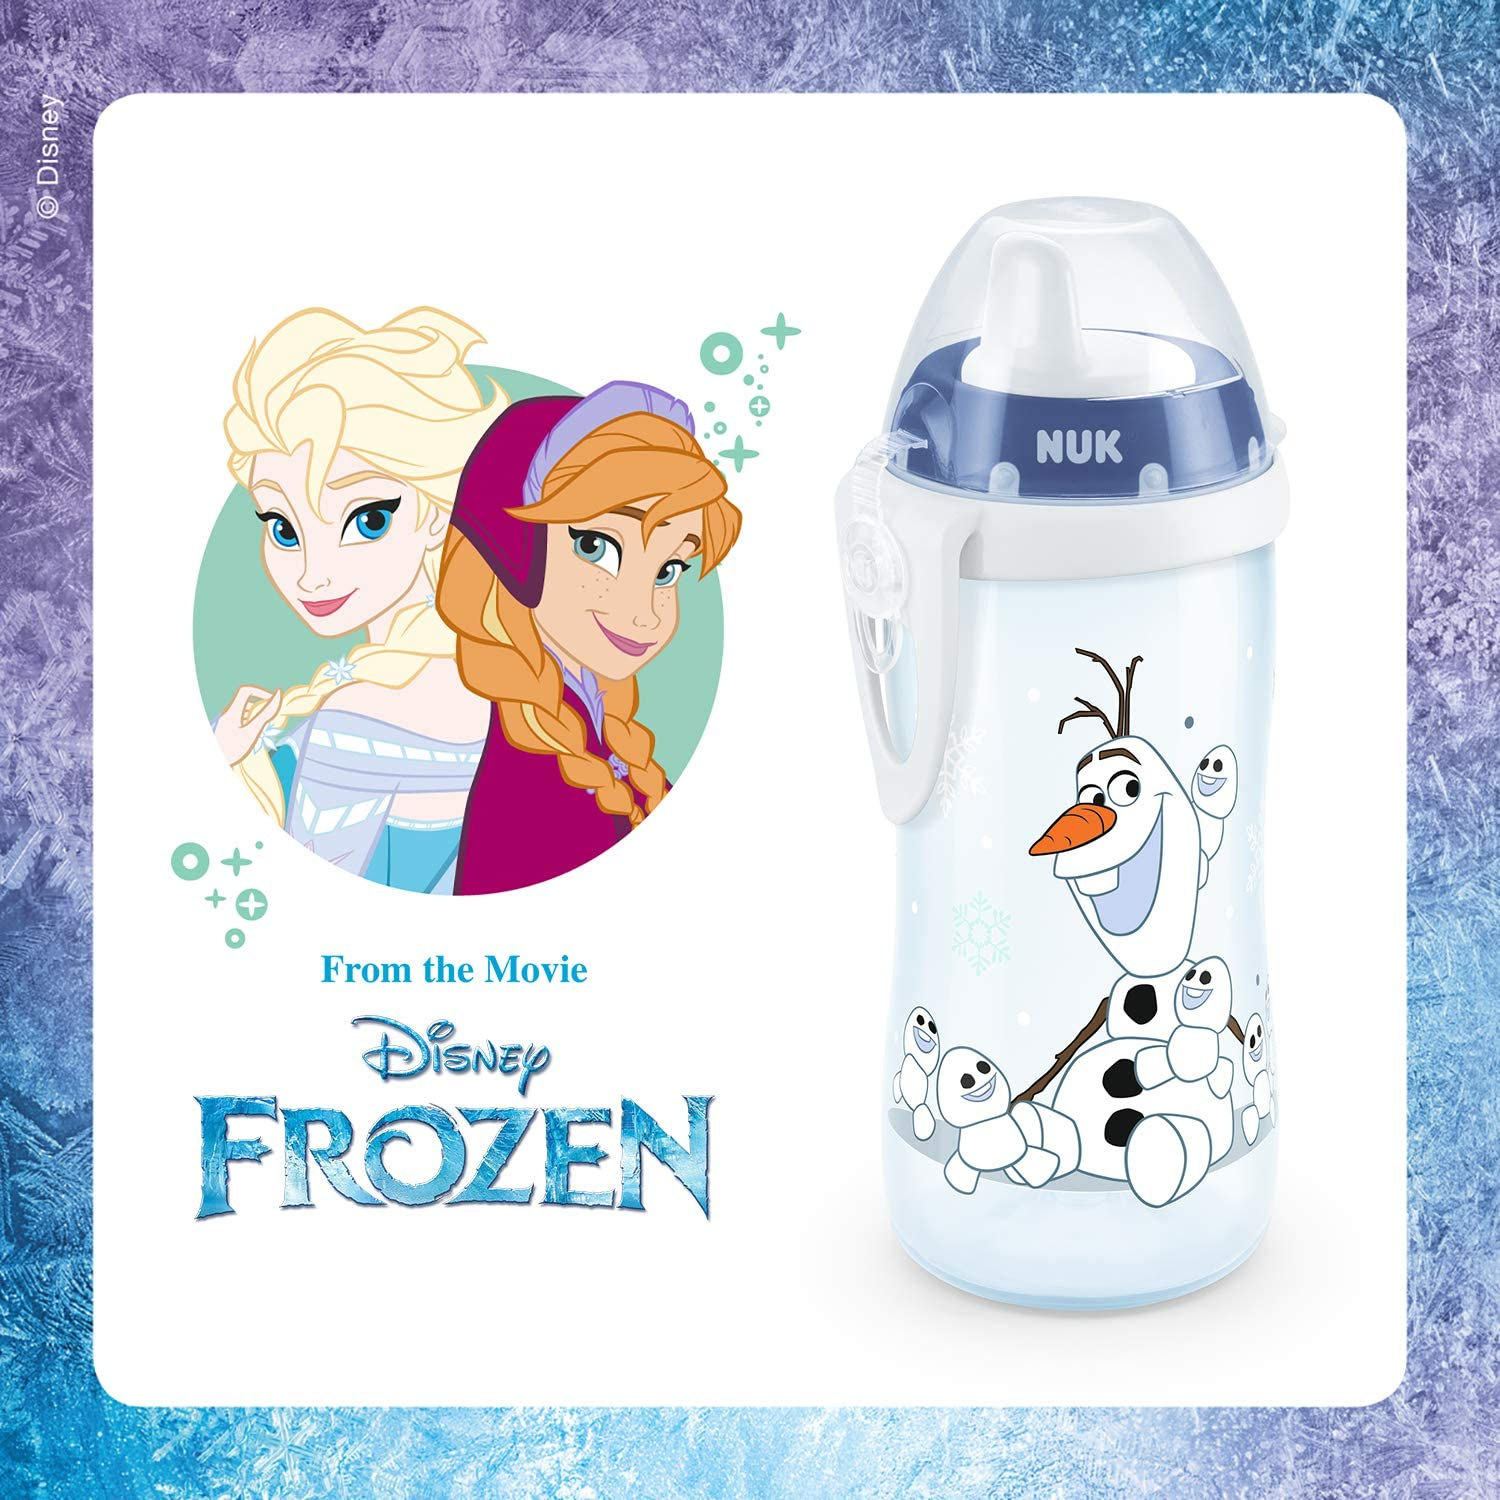 Olaf NUK Disney Frozen Kiddy Cup Toddler Cup 12+ Months BPA-free Leak-Proof with Bite Resistant Spout 300ml